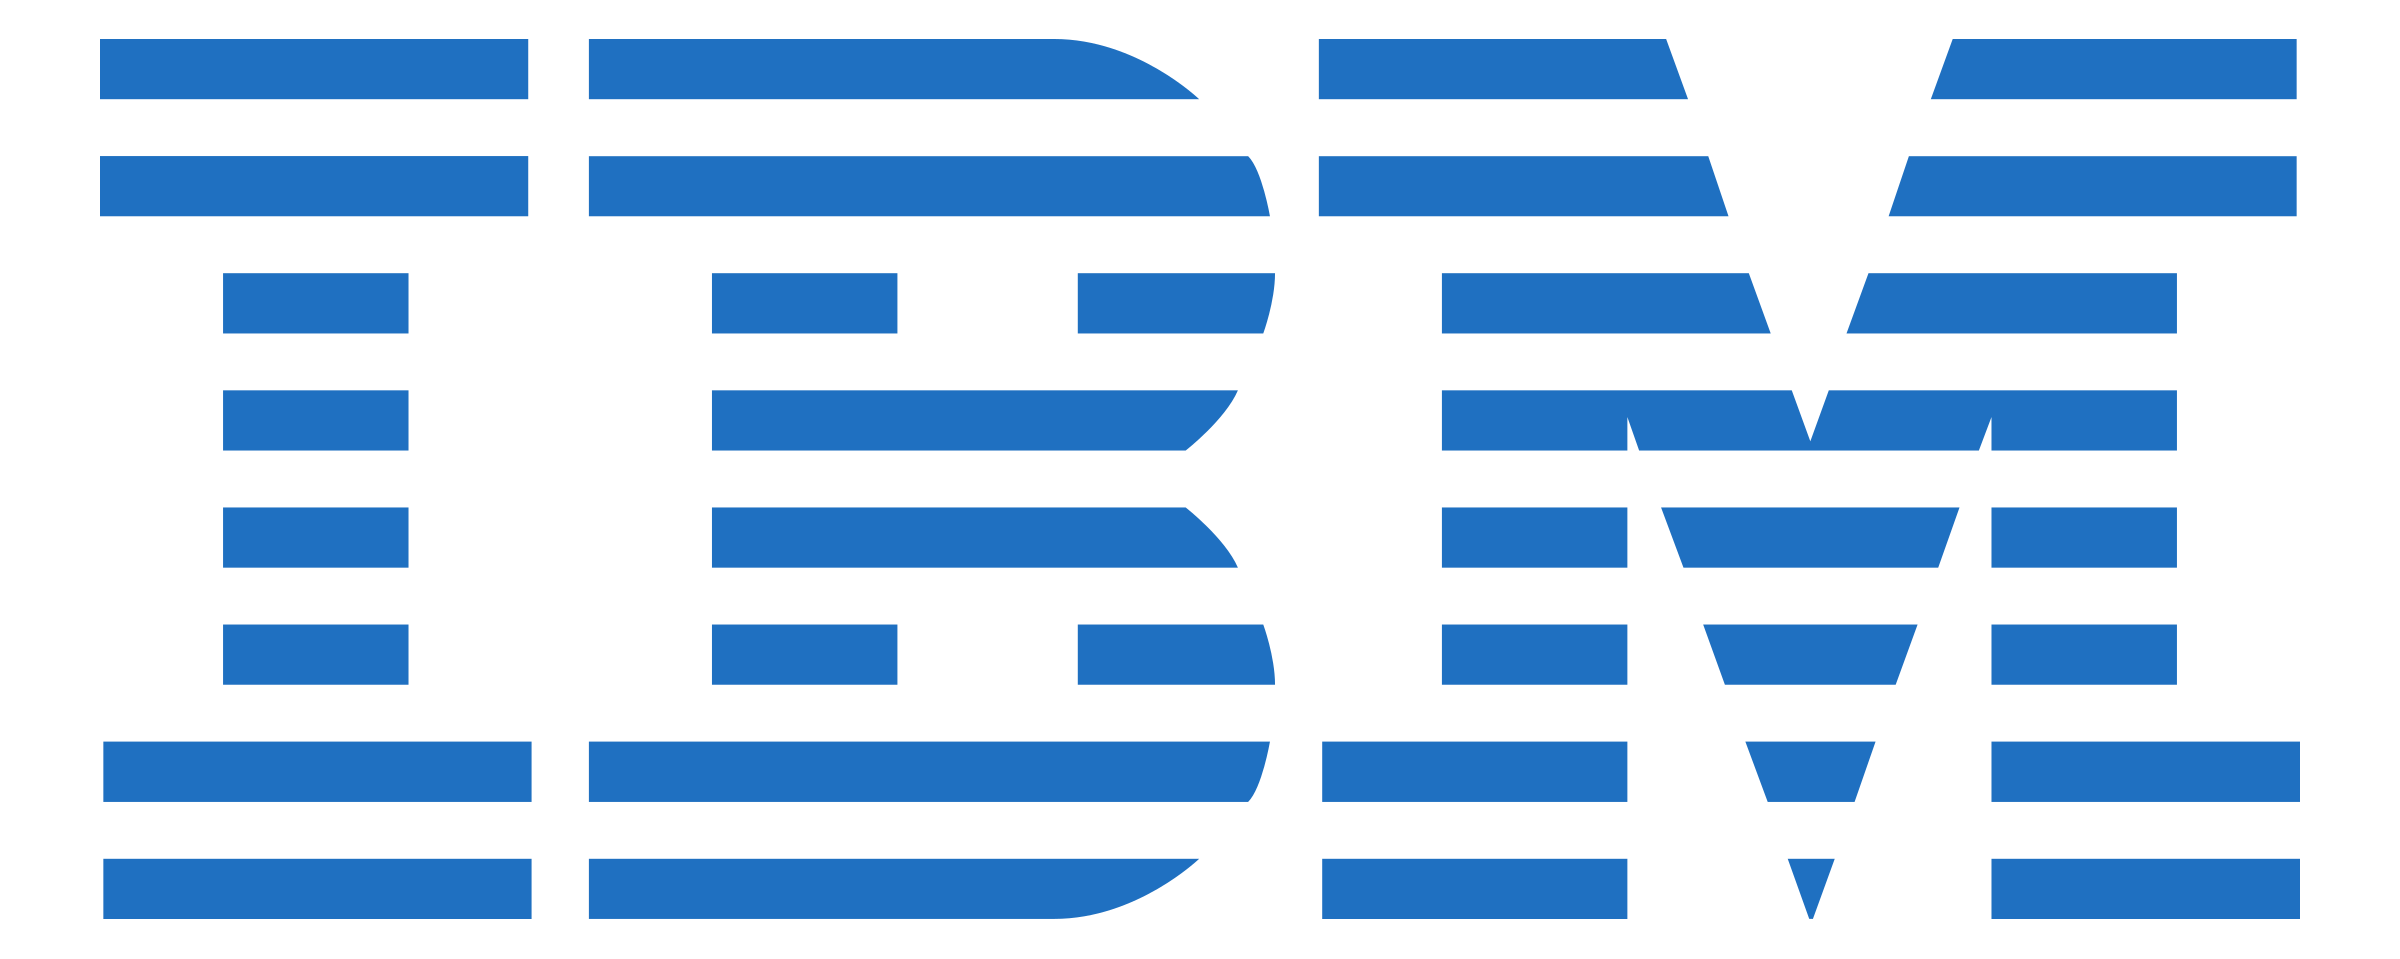 Ibm logo png svg. Transparent codes banner stock